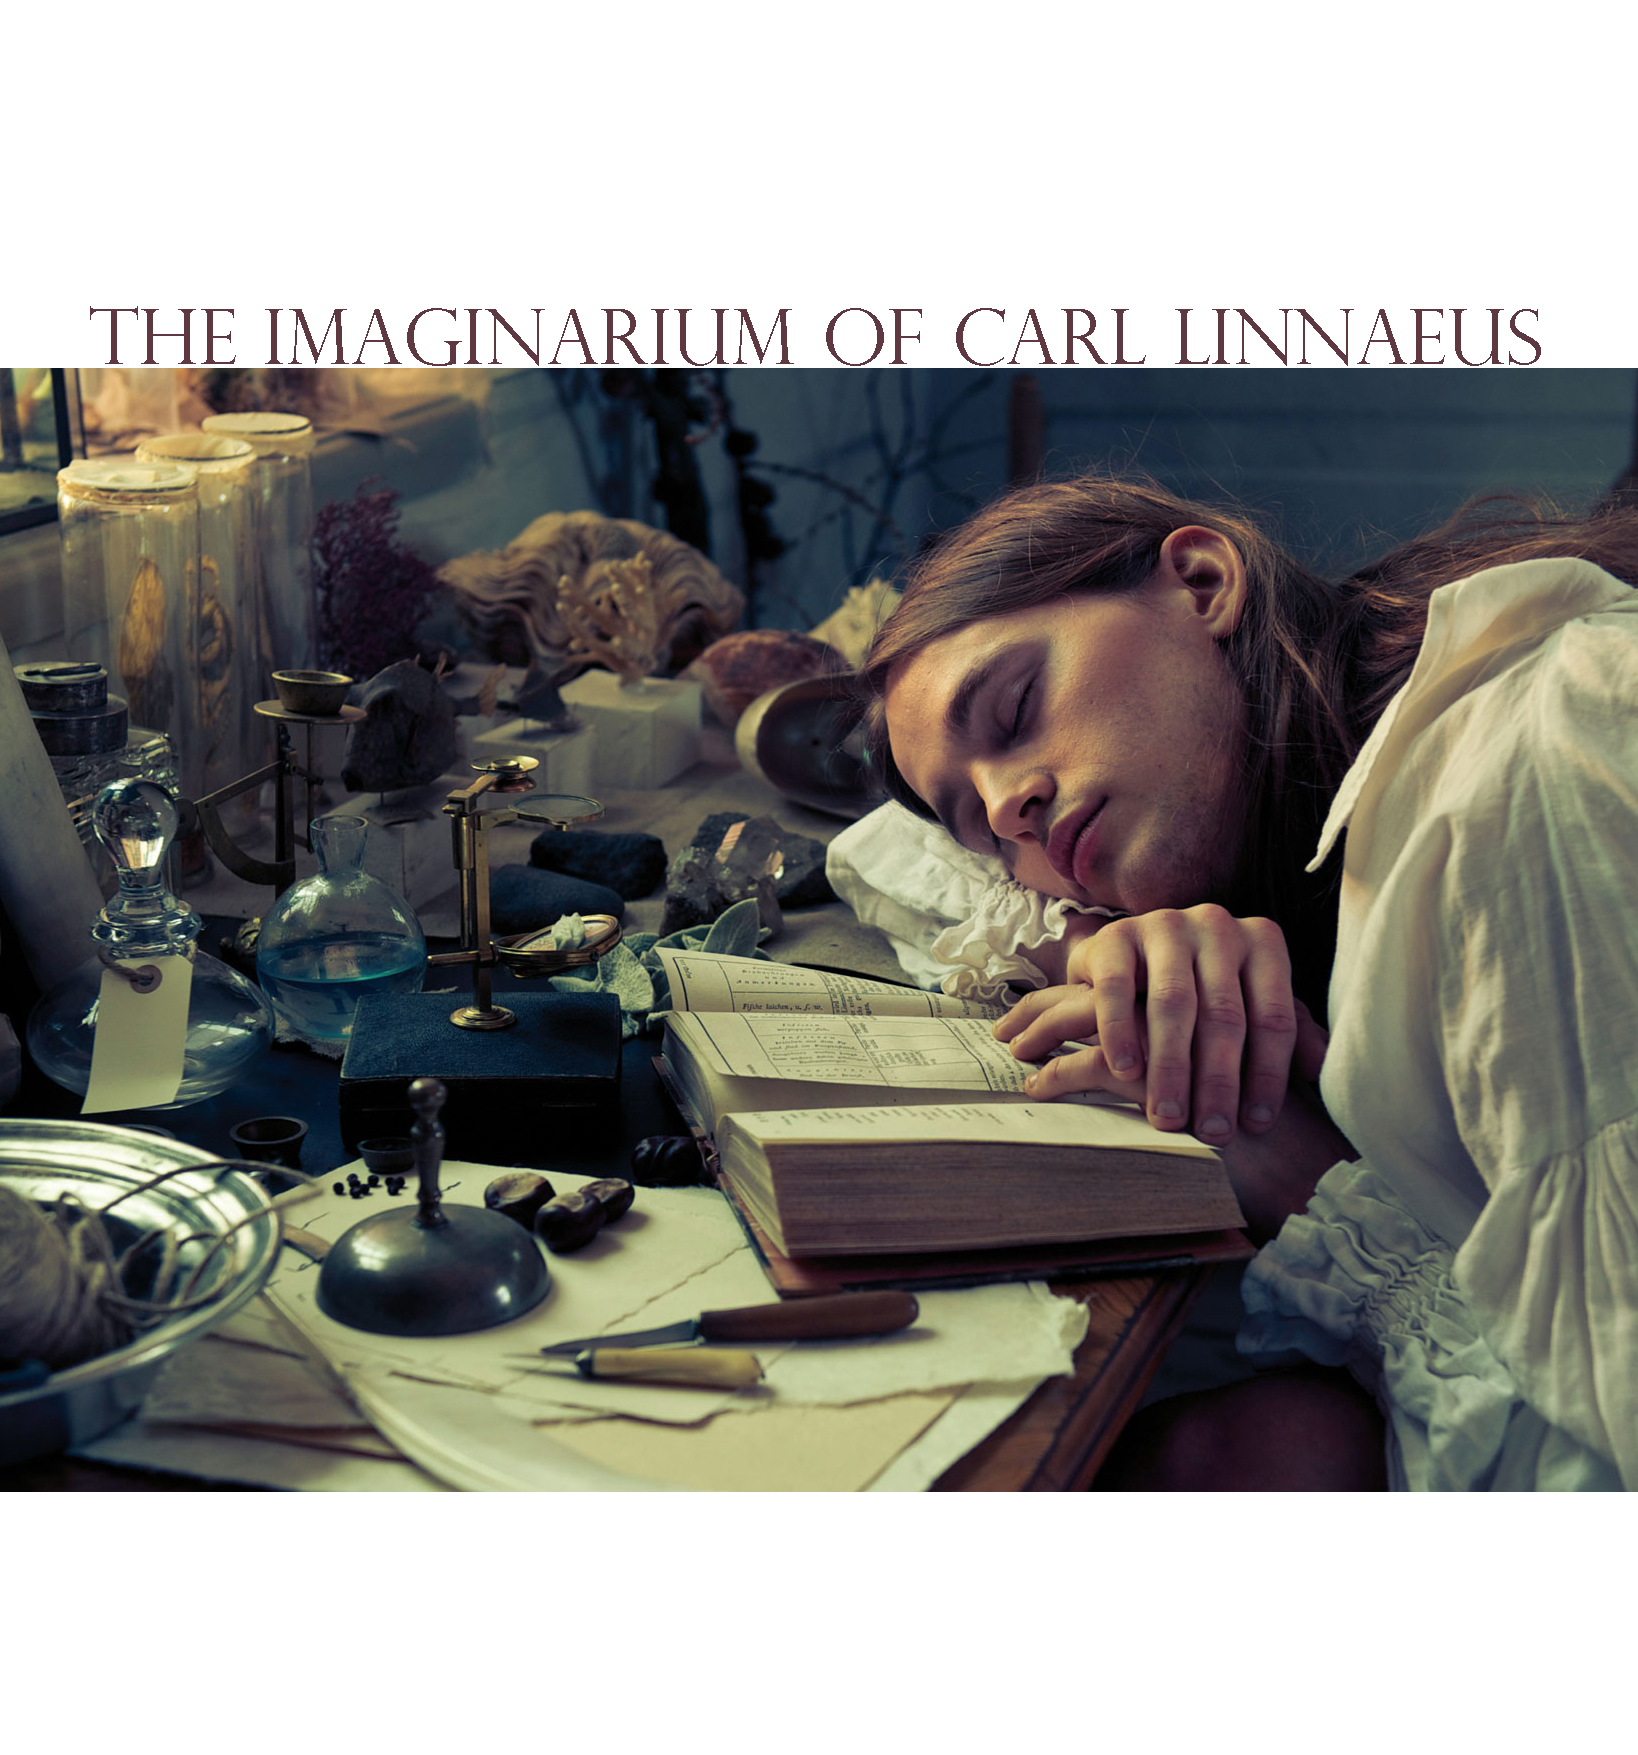 The Imaginarium of Carl Linnaeus